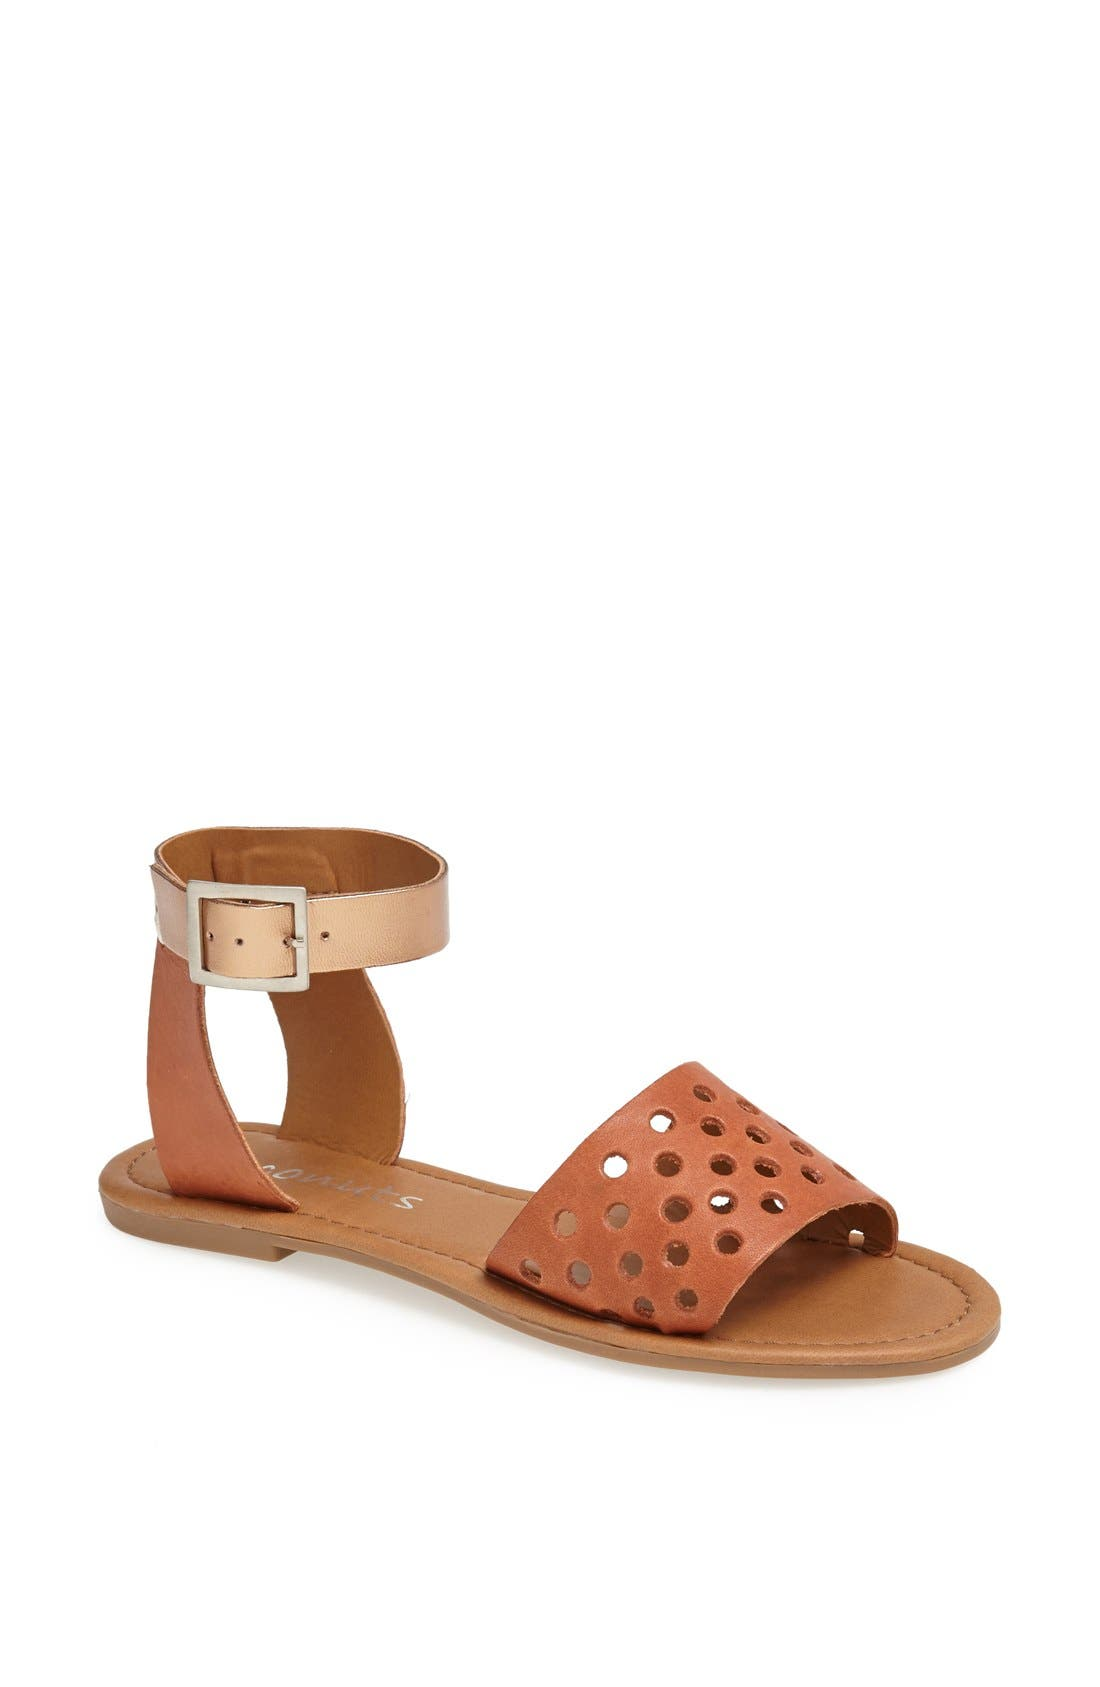 Alternate Image 1 Selected - Coconuts by Matisse 'All About' Perforated Leather Flat Sandal